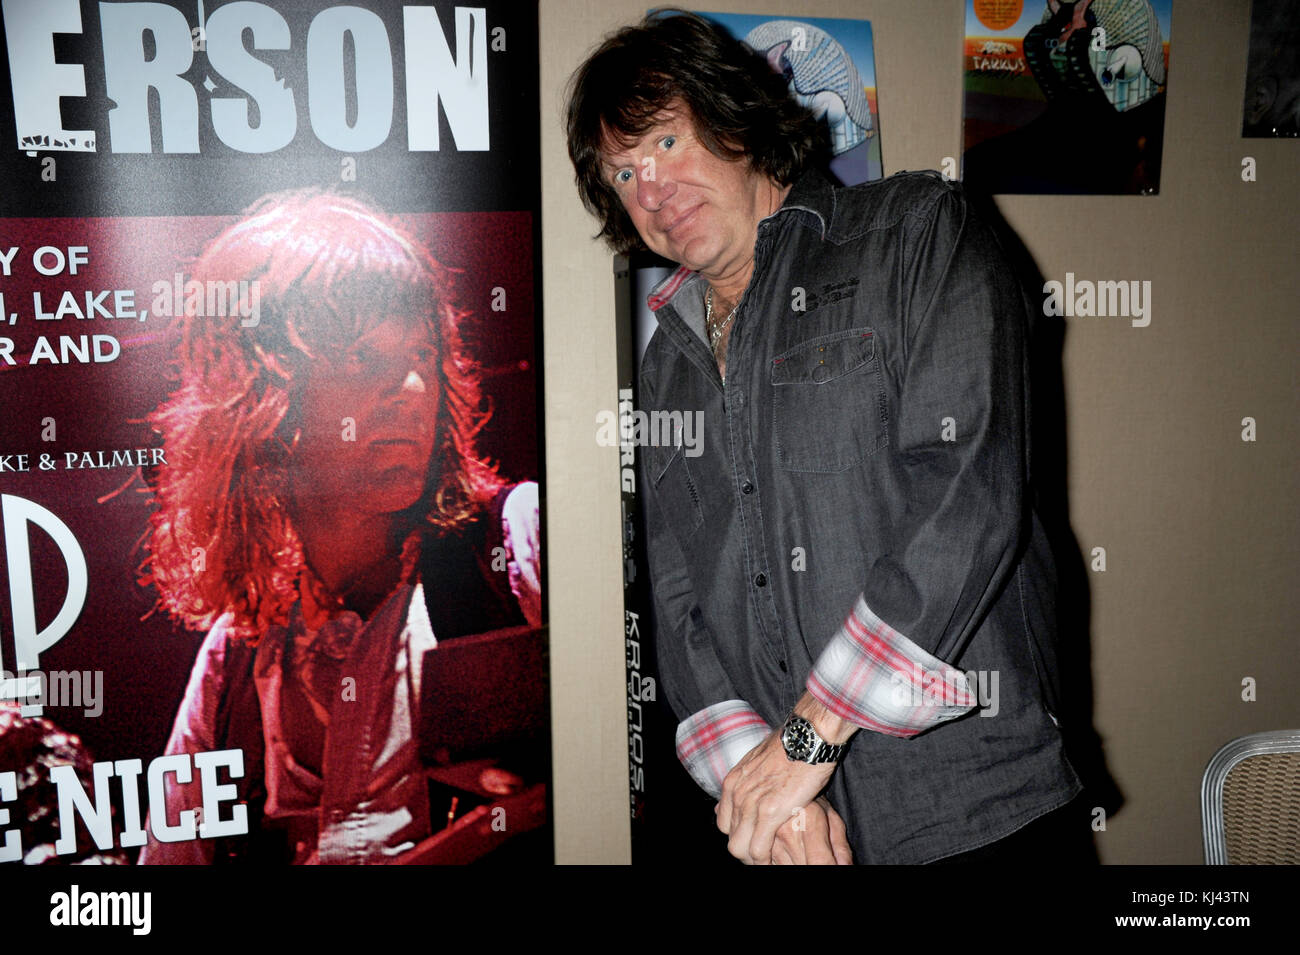 NEW YORK, NY - 2012: Keith Emerson, the flamboyant, English prog-rock pioneer who rose to fame as the keyboardist - Stock Image